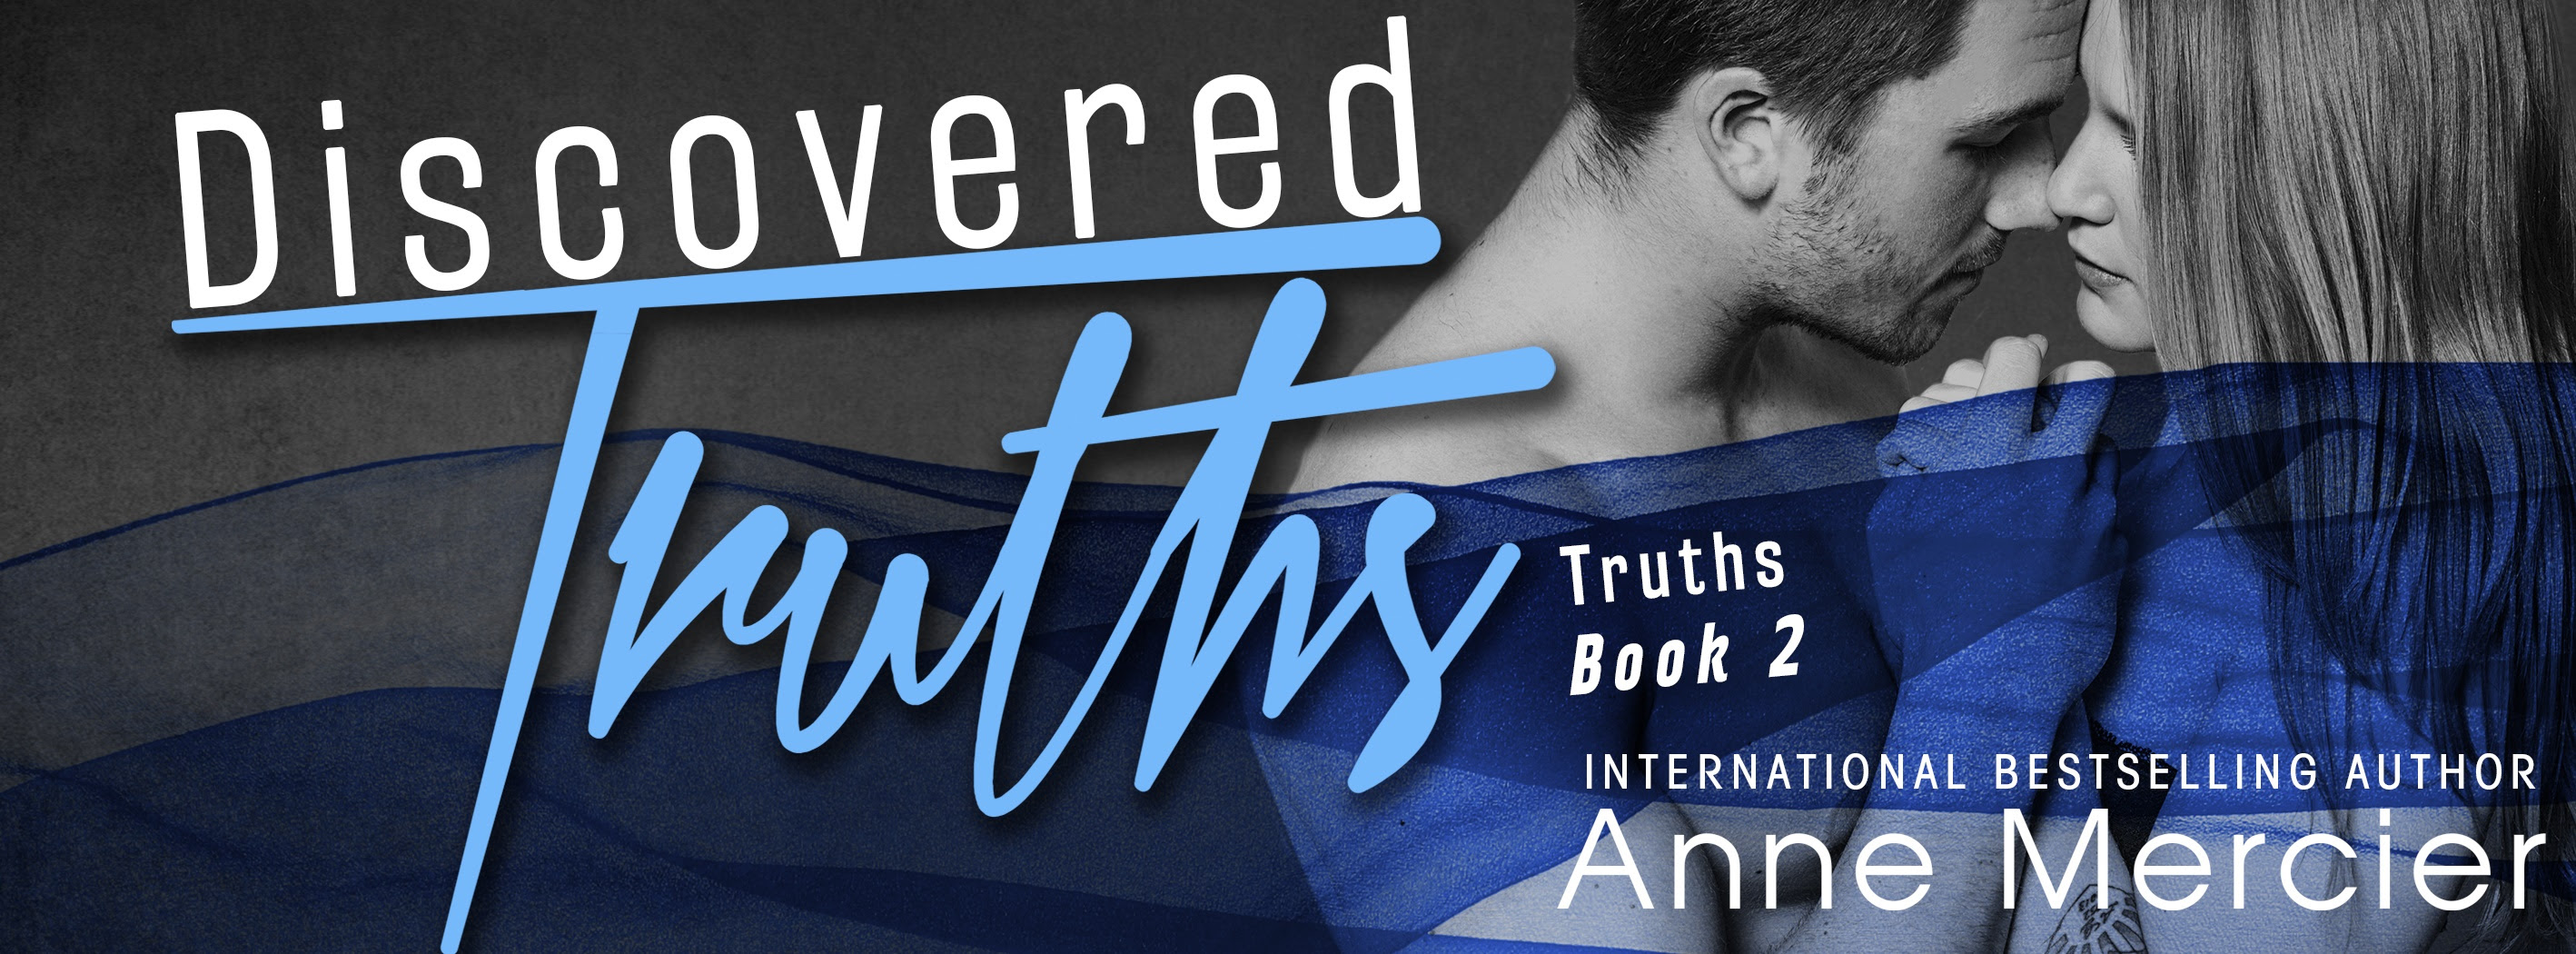 discoved truths_banner